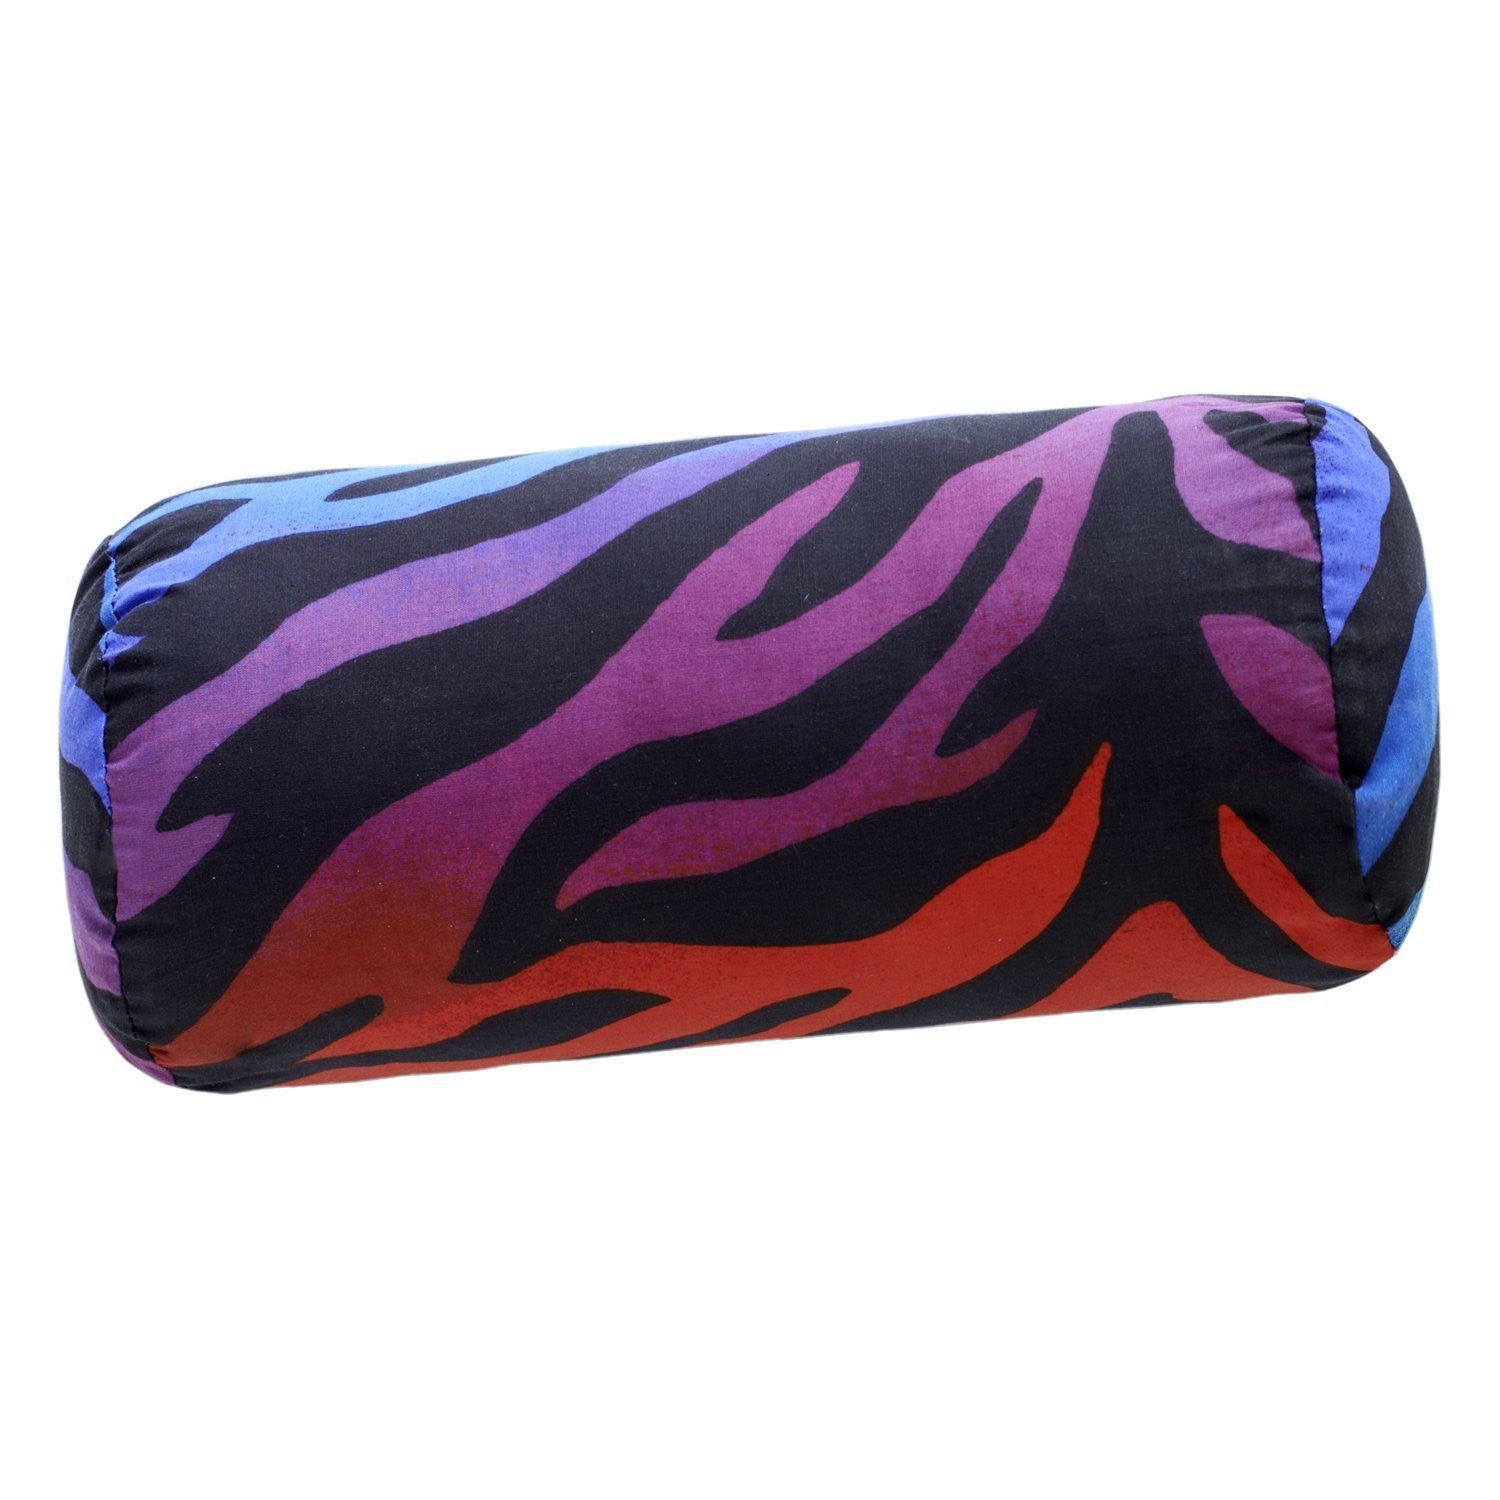 Zebra Rainbow Neckroll Pillow - Back40Trading2